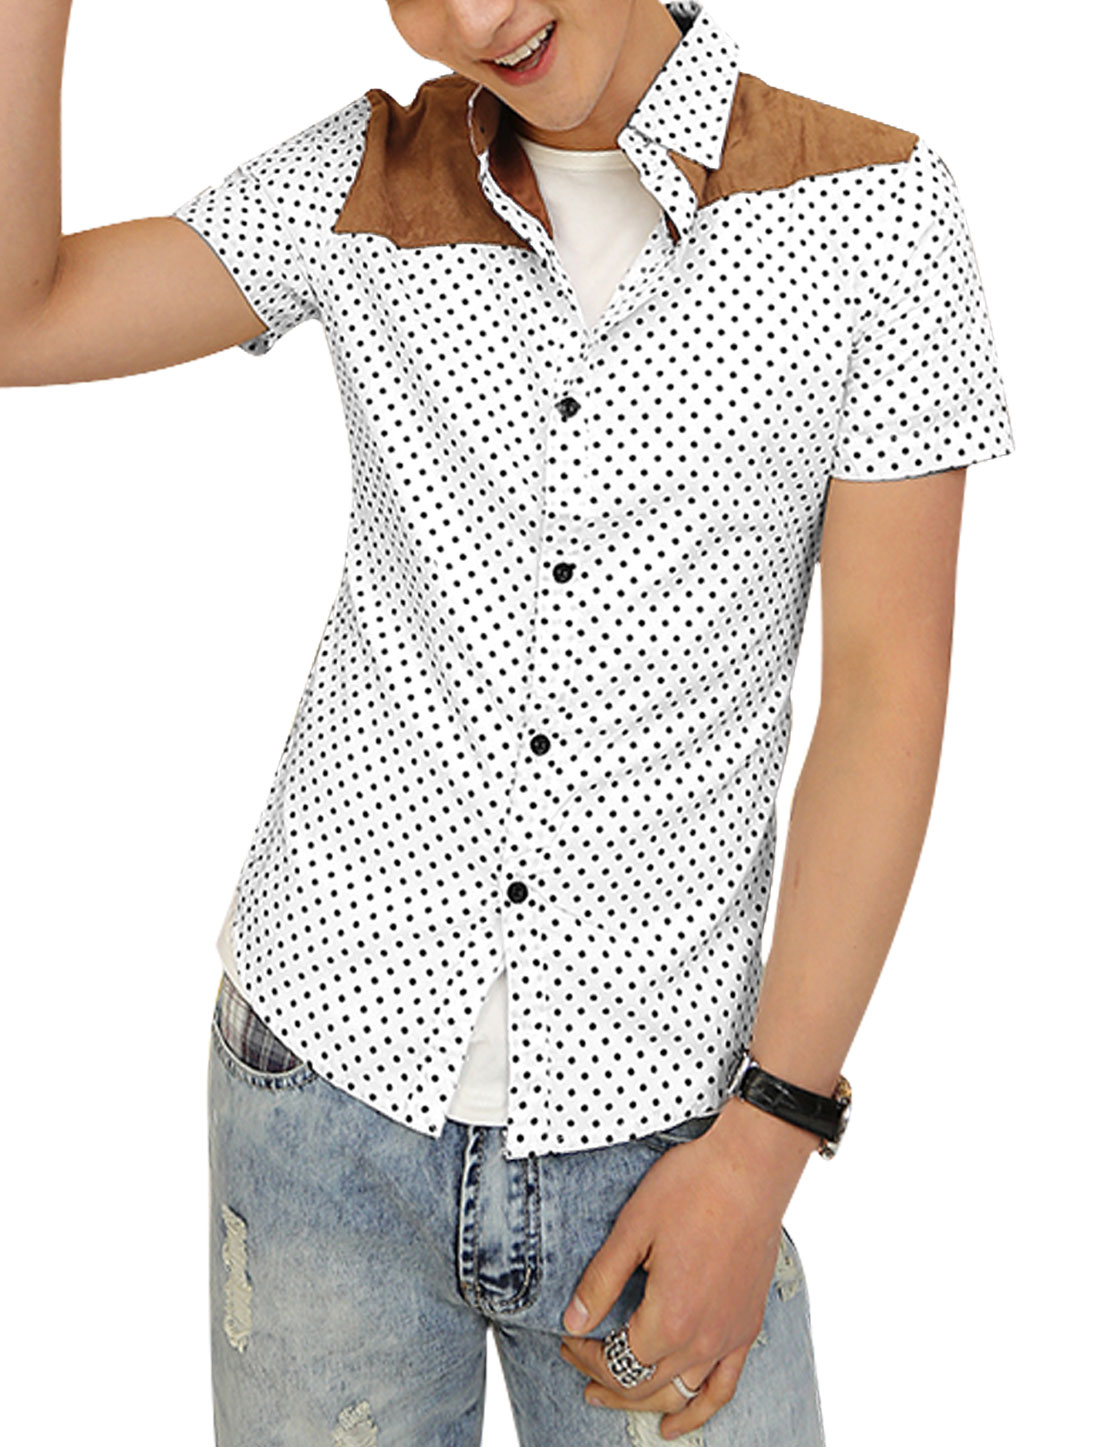 Men Point Collar Dots Buttons Closed Cozy Fit Top Shirt White S